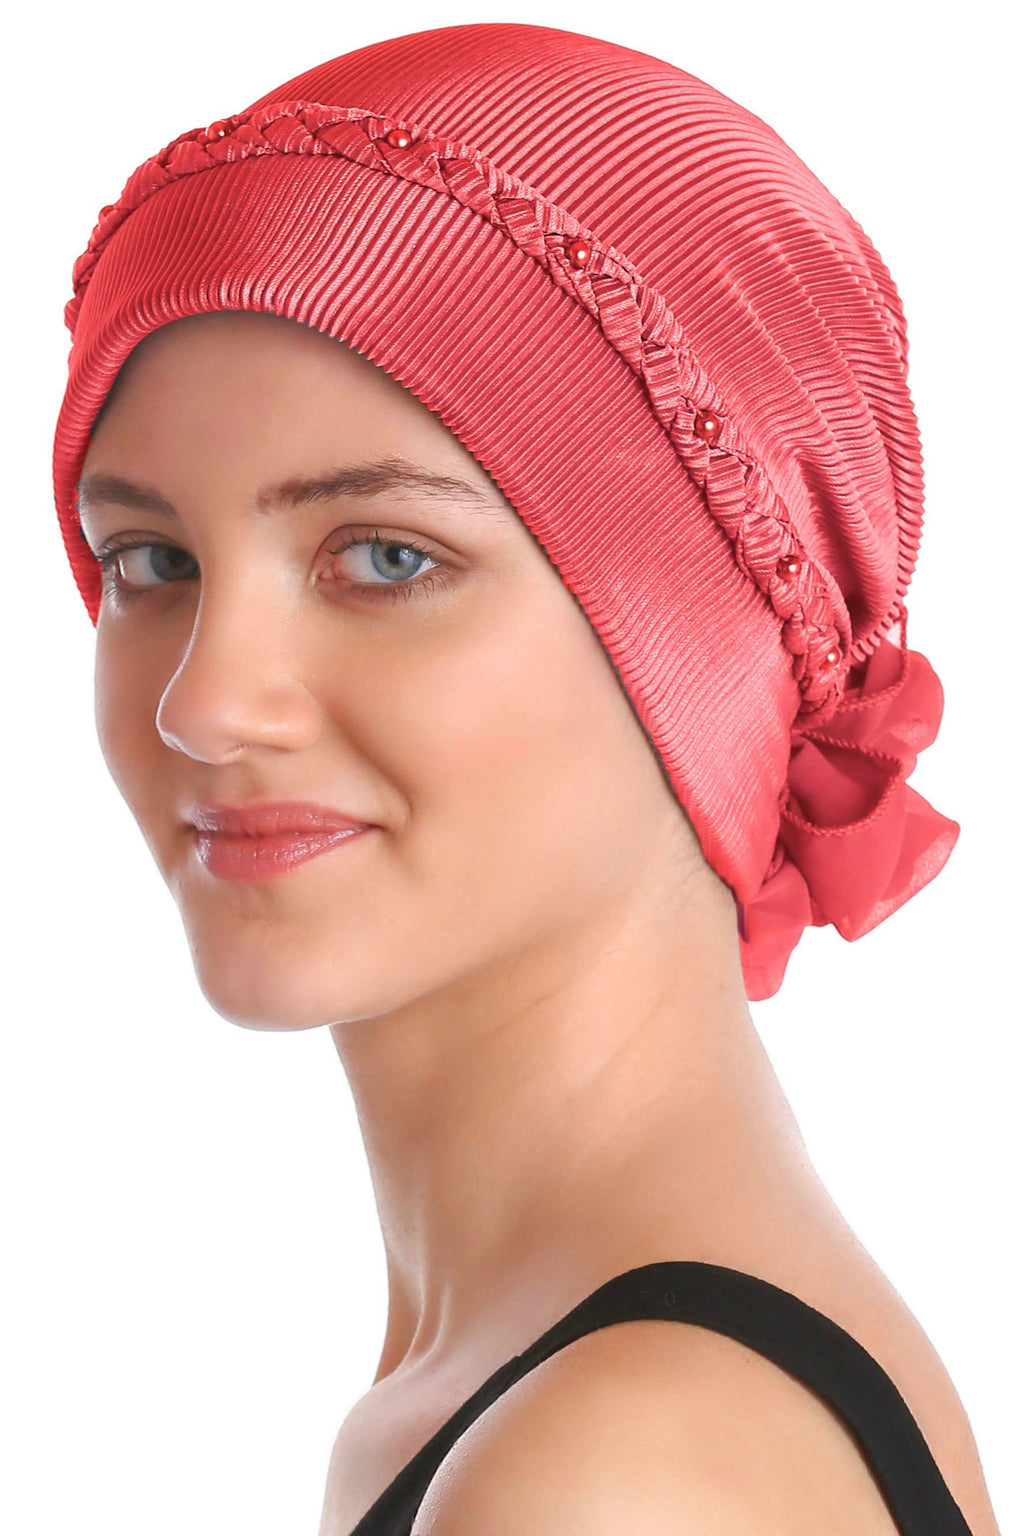 Deresina Braided beaded hat for hairloss for hairloss coral red